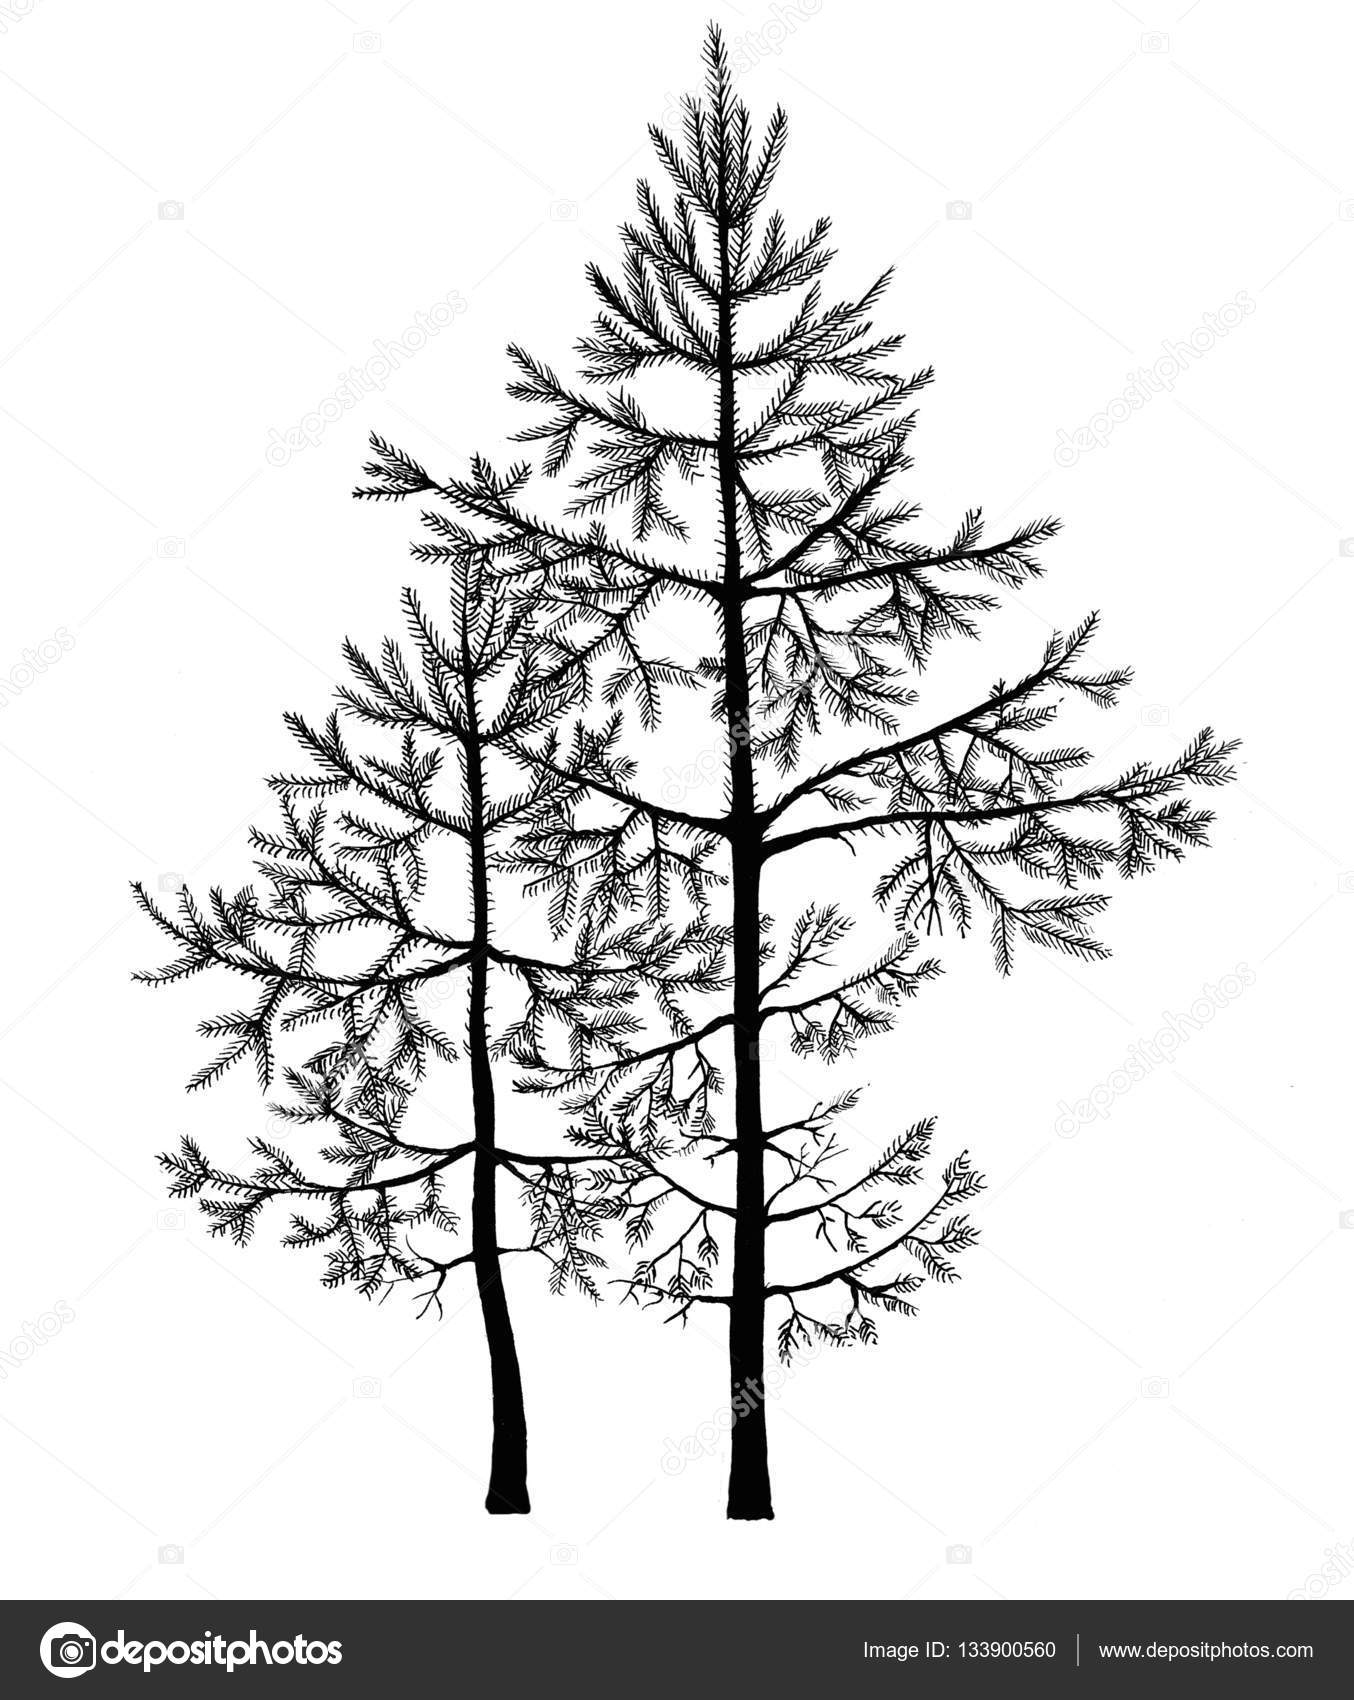 1354x1700 Black Pen Drawing Of Small Fir Trees In A Forest. Realistic Hand